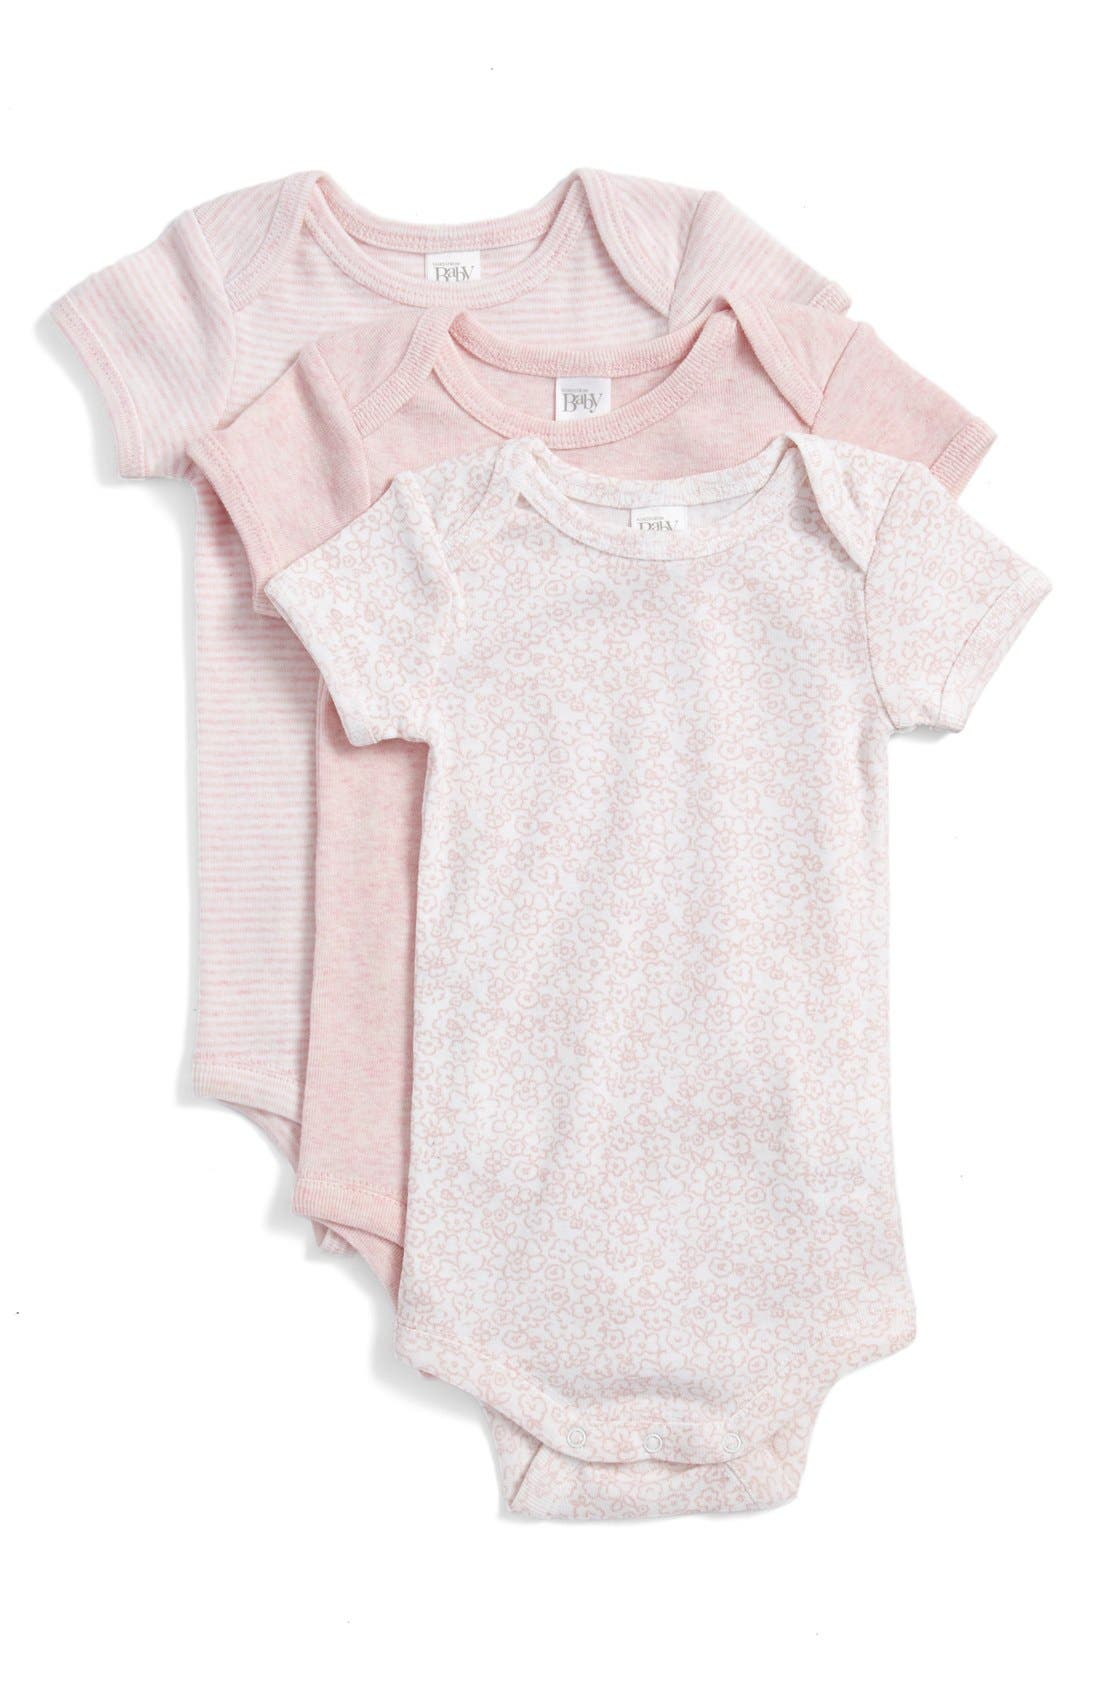 Short Sleeve Cotton Bodysuits,                             Main thumbnail 1, color,                             Pink Baby Pack